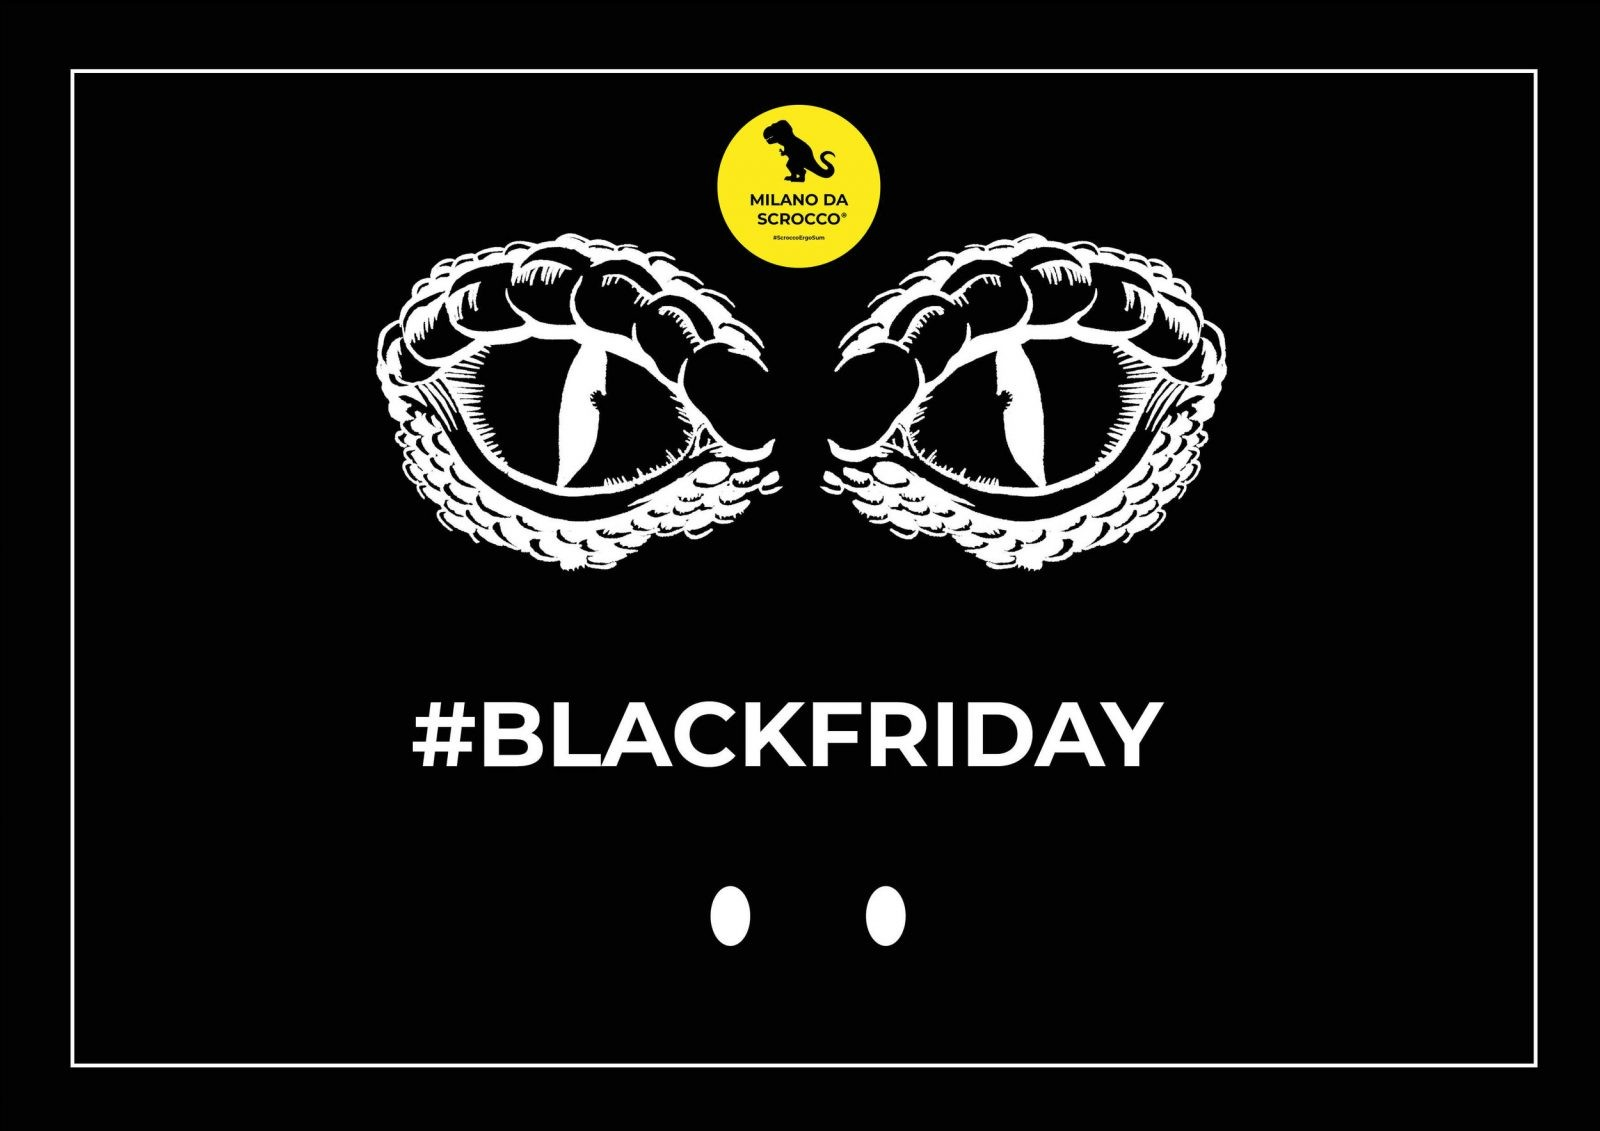 #BlackFriday? Non serve se segui Milano da Scrocco